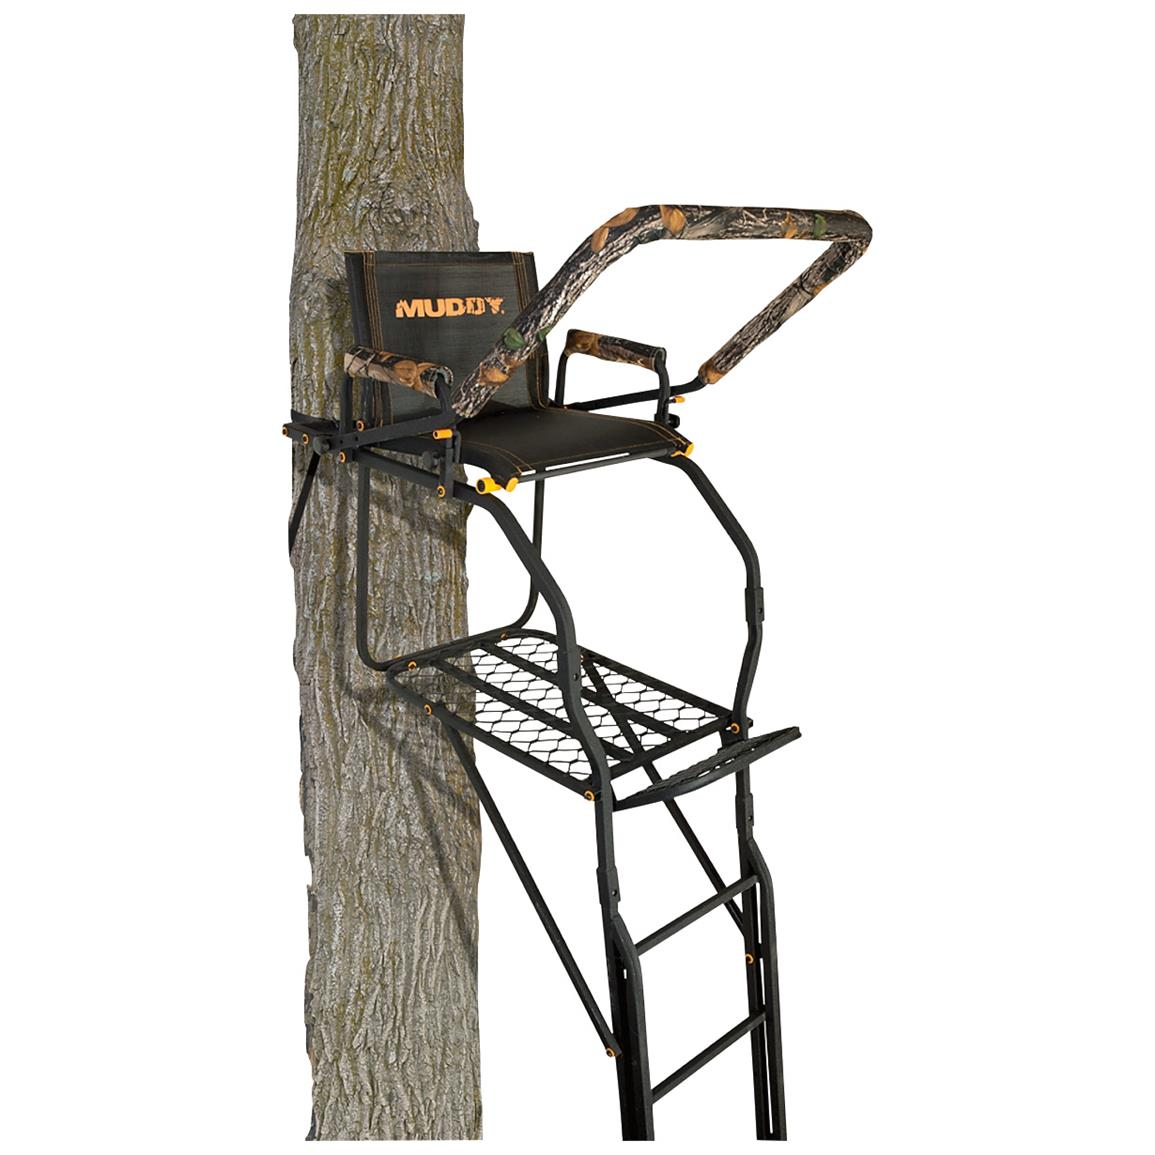 Muddy Skybox 20 foot Ladder Tree Stand